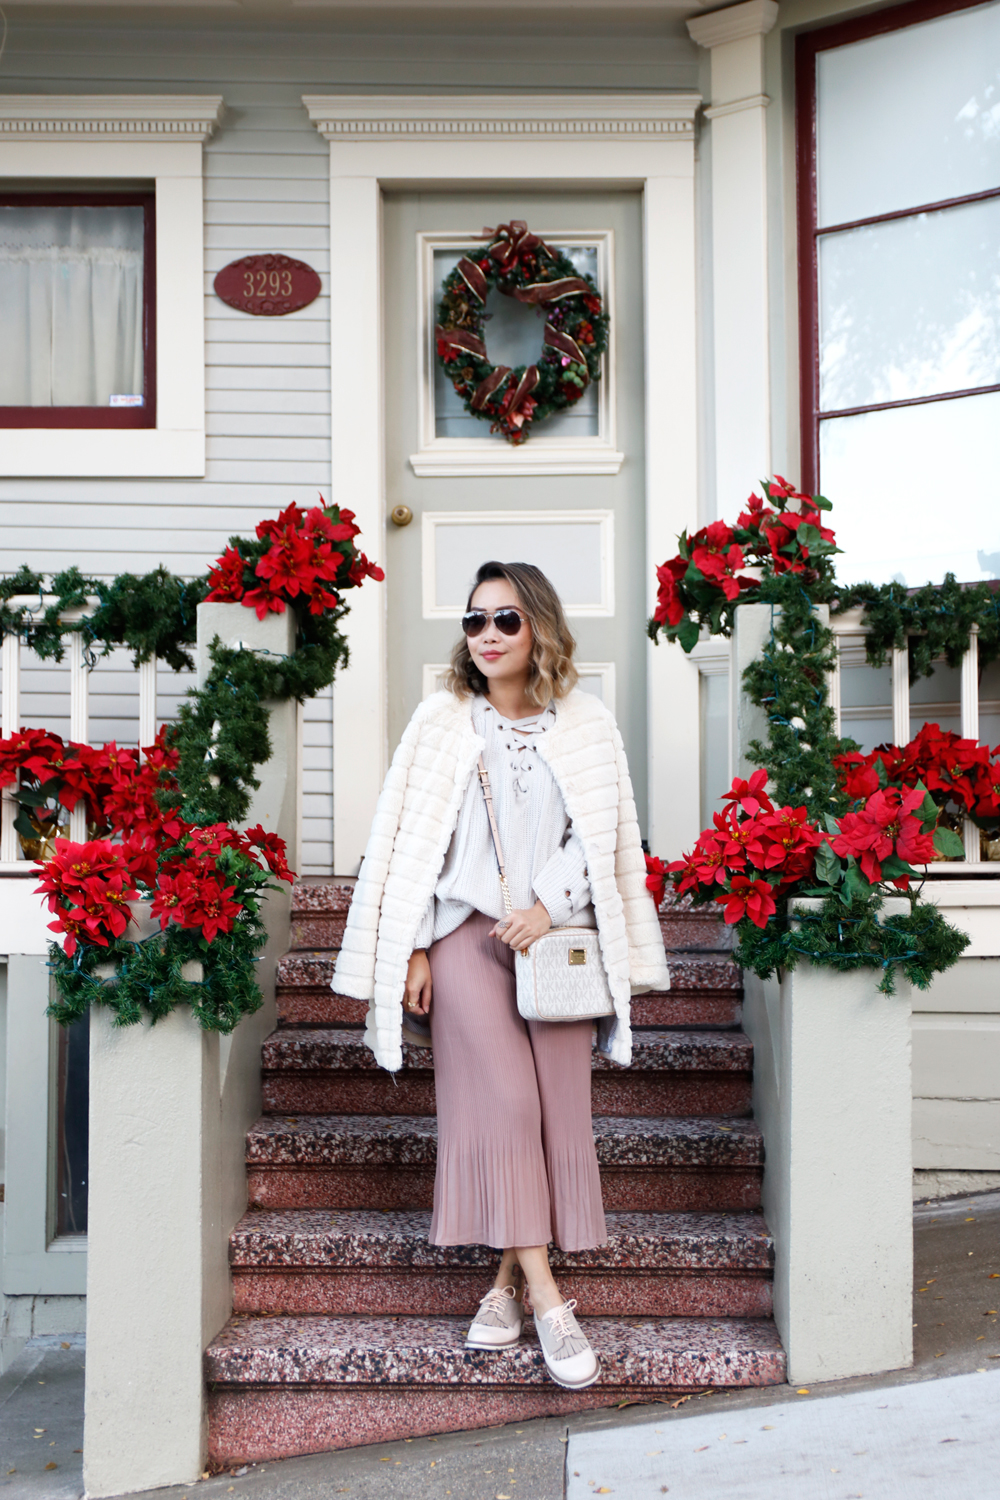 03holiday-christmas-neutral-pastel-sf-sanfrancisco-fashion-style